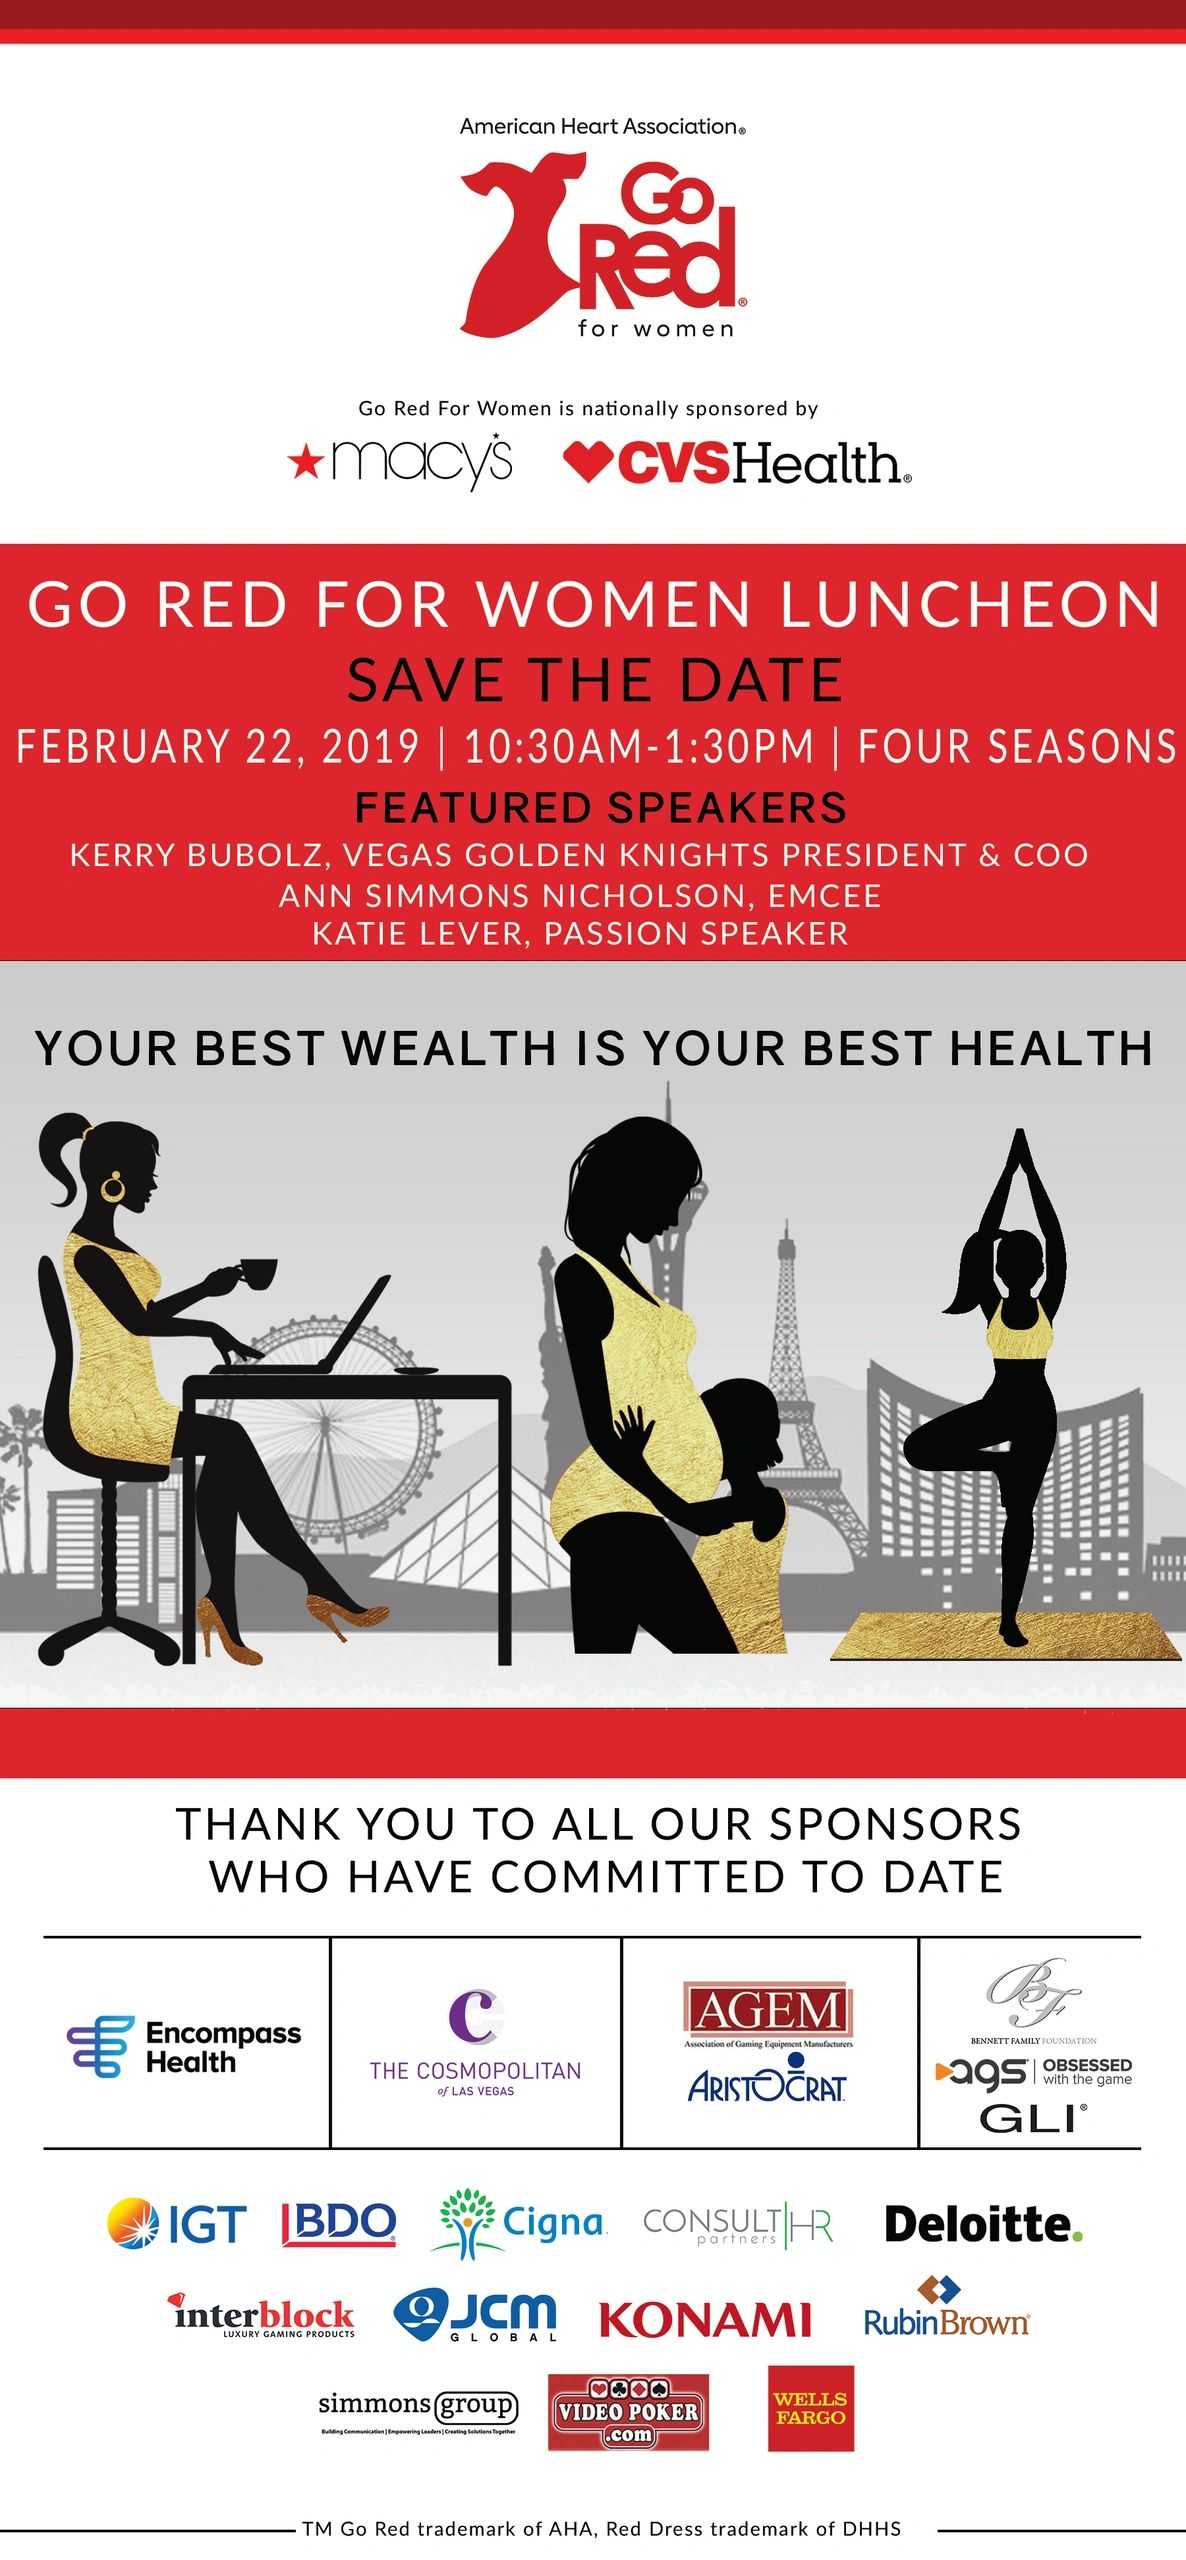 8e87c6c49d5 We are honored to be a sponsor for Go Red for Women Luncheon Event this  February!